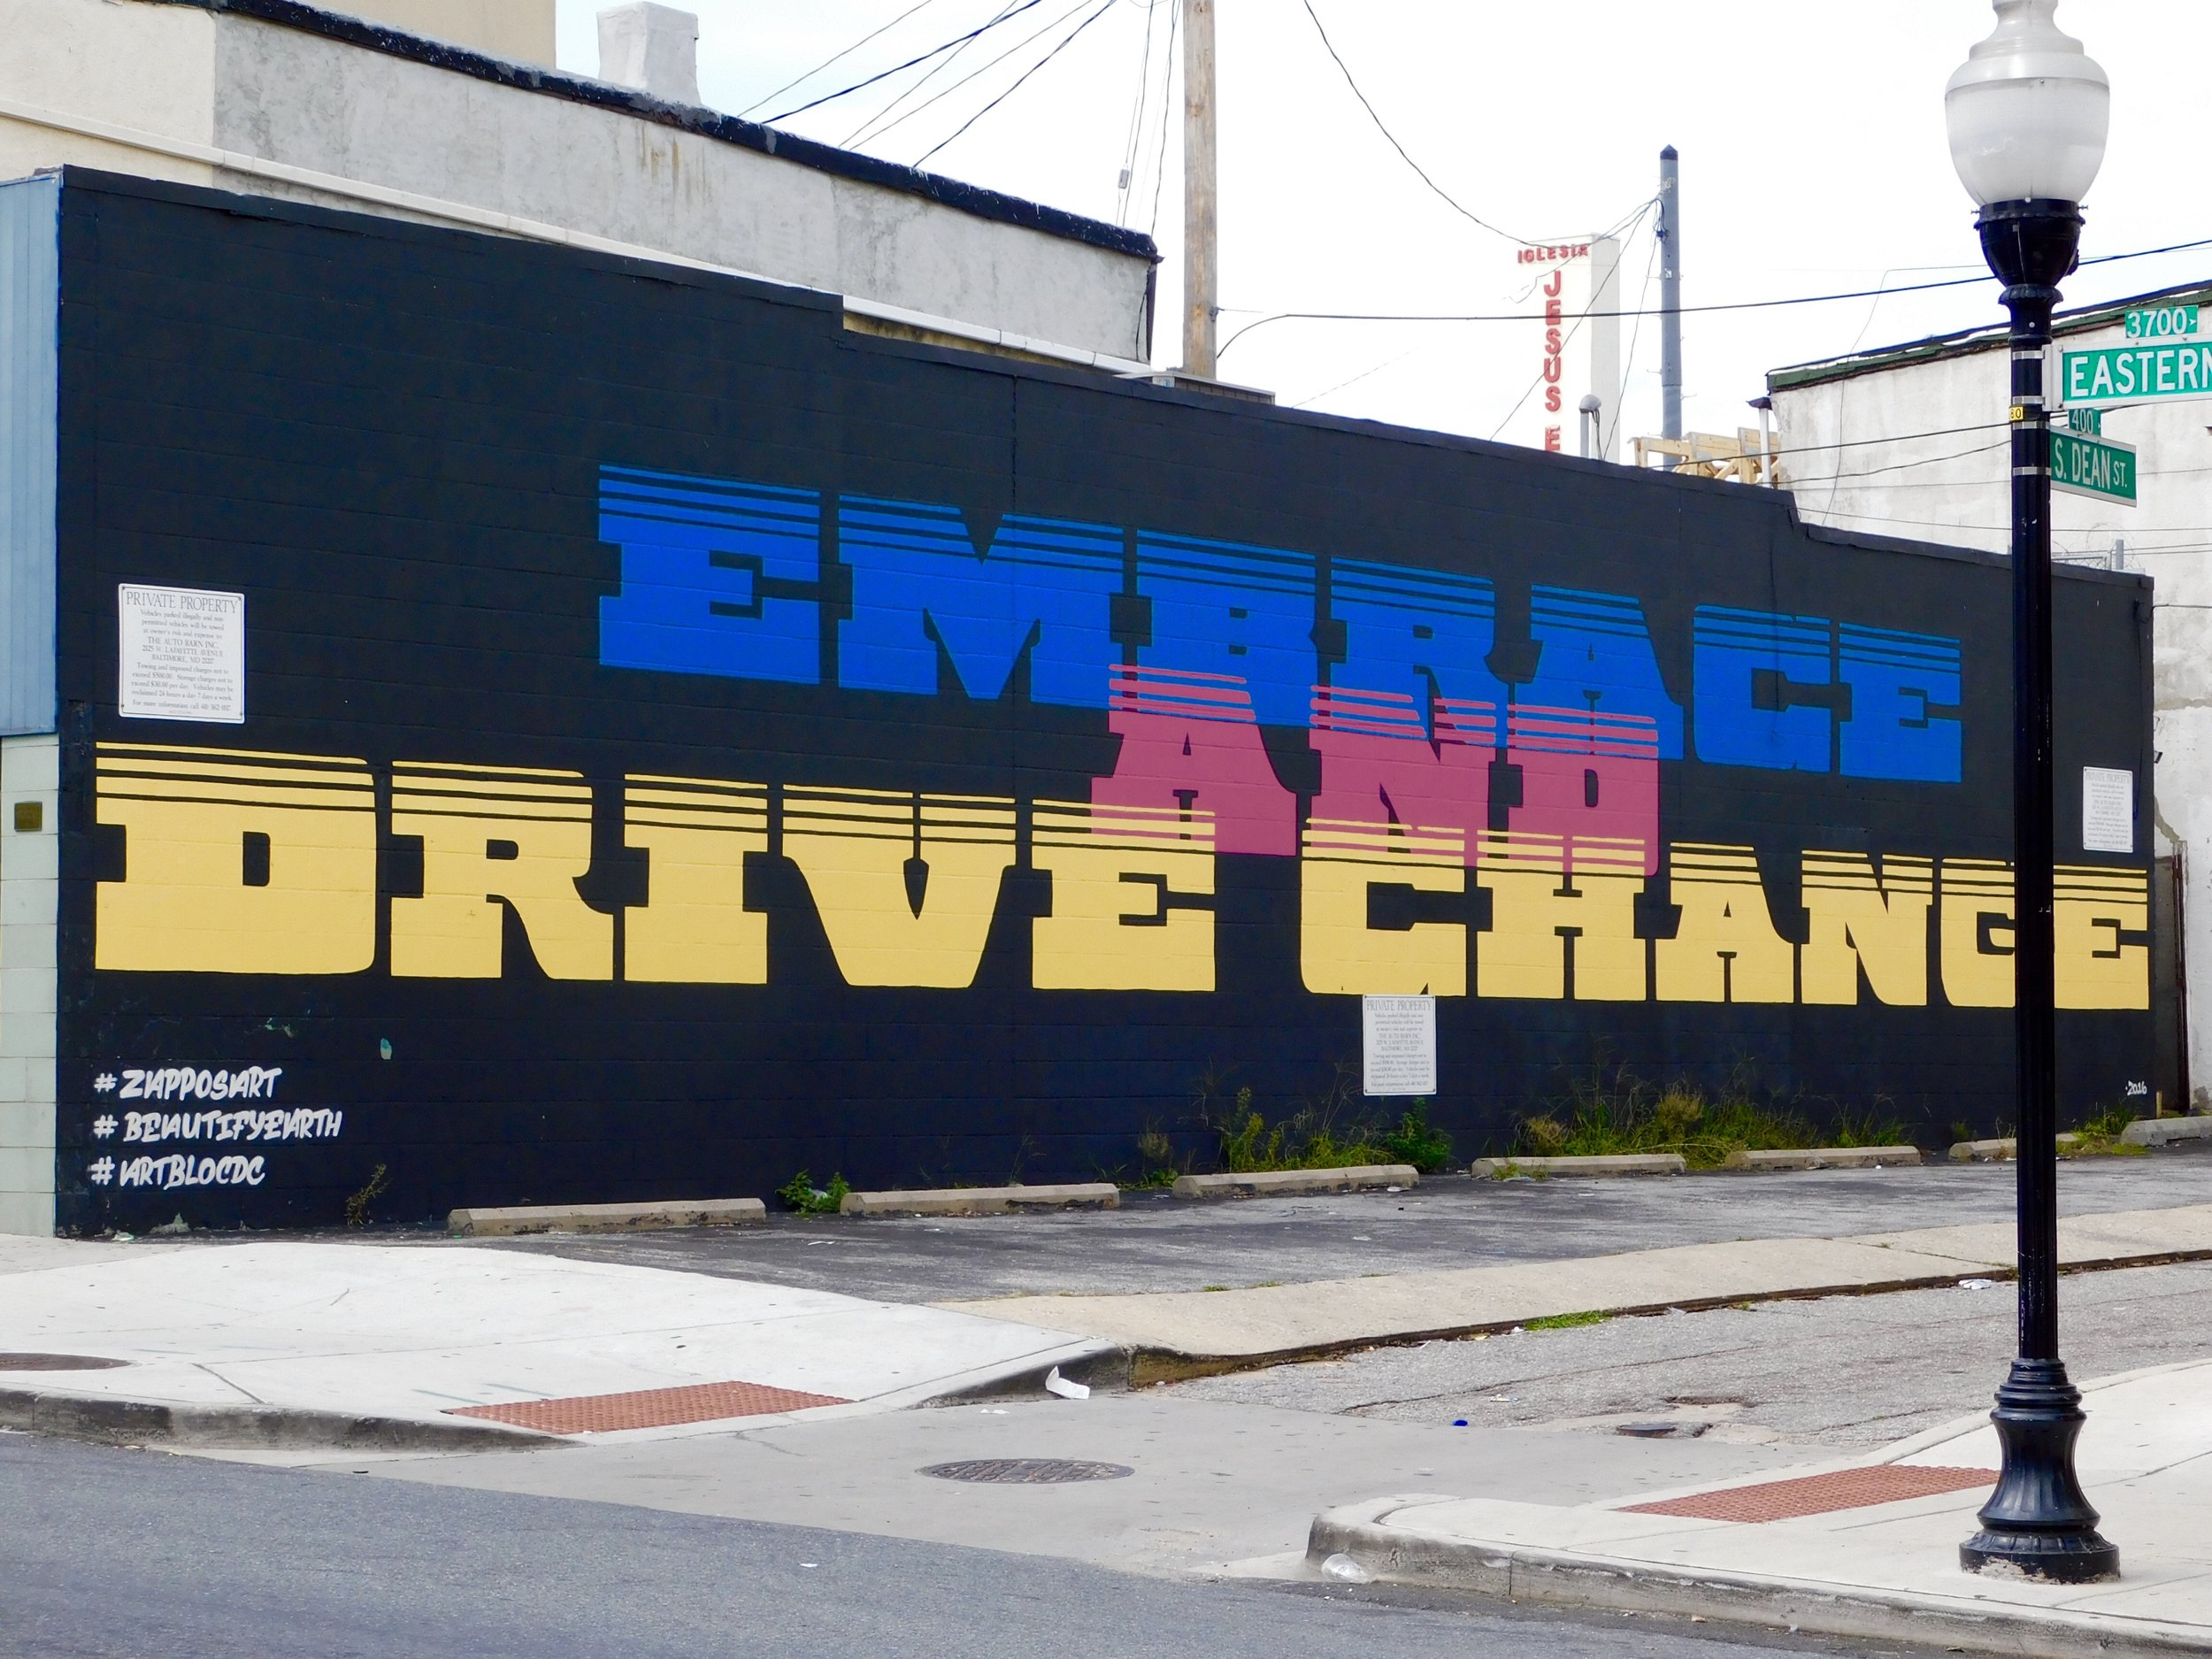 """I was recently in the Highlandtown neighborhood of Baltimore for Street Art Walk led by the artist  Michael Owen . We didn't stop to explore this piece, but I couldn't resist the message or the colors. One of the things I love about street art is that the image is just the beginning. Since most pieces, like this one, are signed or include hashtags, I try to dig into finding out about the person and context behind the work. Turns out the three hashtags revealed a lot. """"Embrace and drive change"""" is one of  Zappos' 10 Core Values . The company (thus #ZapposArt) worked with the nonprofit (#BeautifyEarth) to sponsor artists to turn their core values into murals in cities across the country. Seems like a number of the artists aren't actually home grown. In this case #ArtBlocDC is a DC-based artist. It's not uncommon for street artists to do works in other cities, or for corporations to sponsor them. However, I particularly love street art when it's a reflection of how folks are shaping the local landscapes in which they live and work.Snapped on my Nikon B500 at Eastern Ave. and S. Dean Street."""